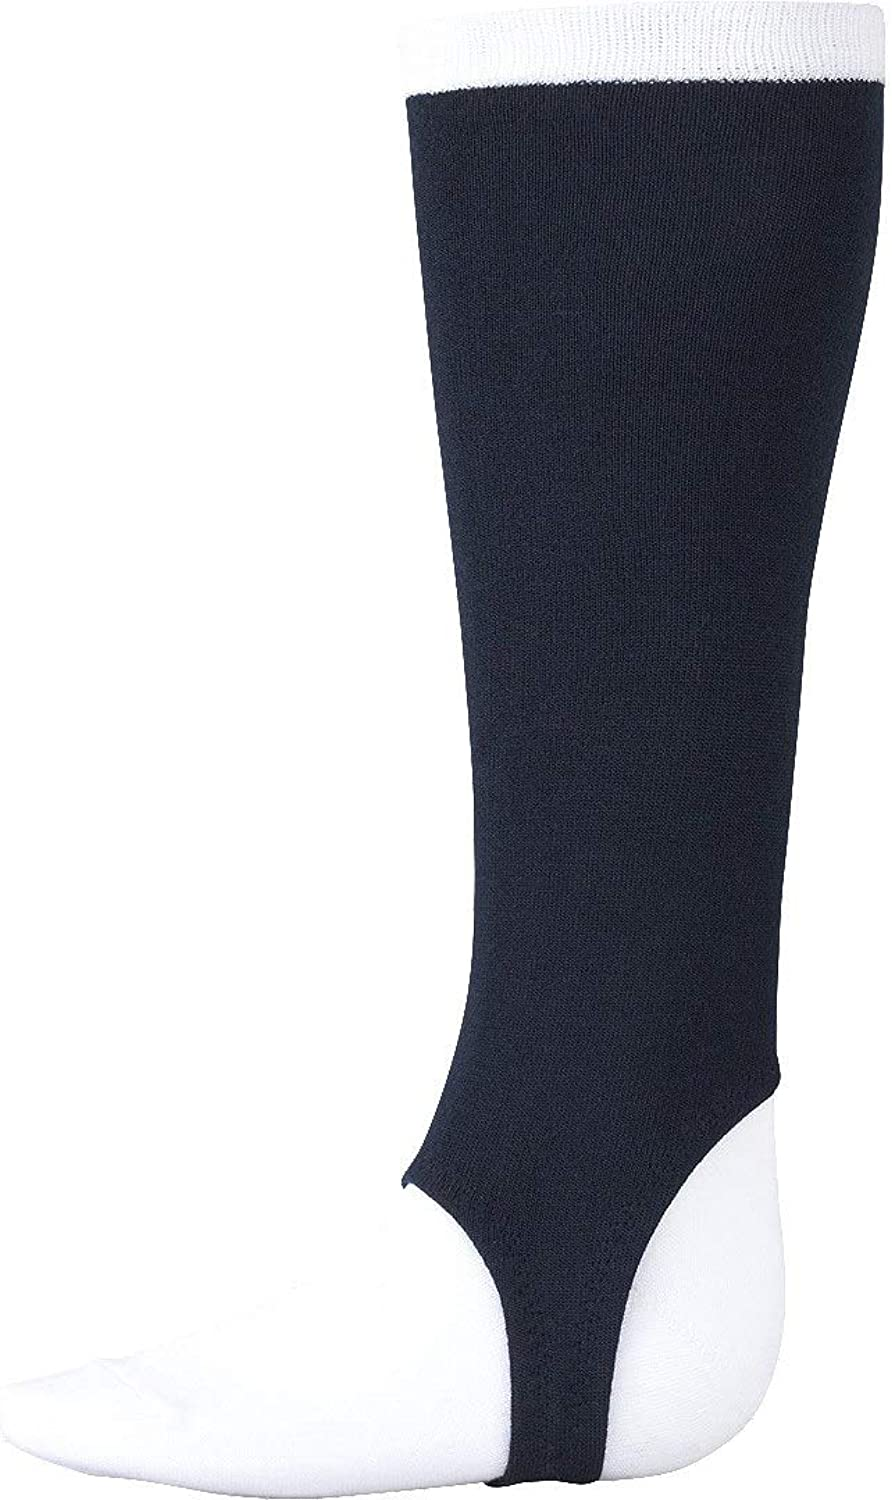 (ASICS) asics baseball baseball accessories stockings lowcut men's BAE013 50 Navy F